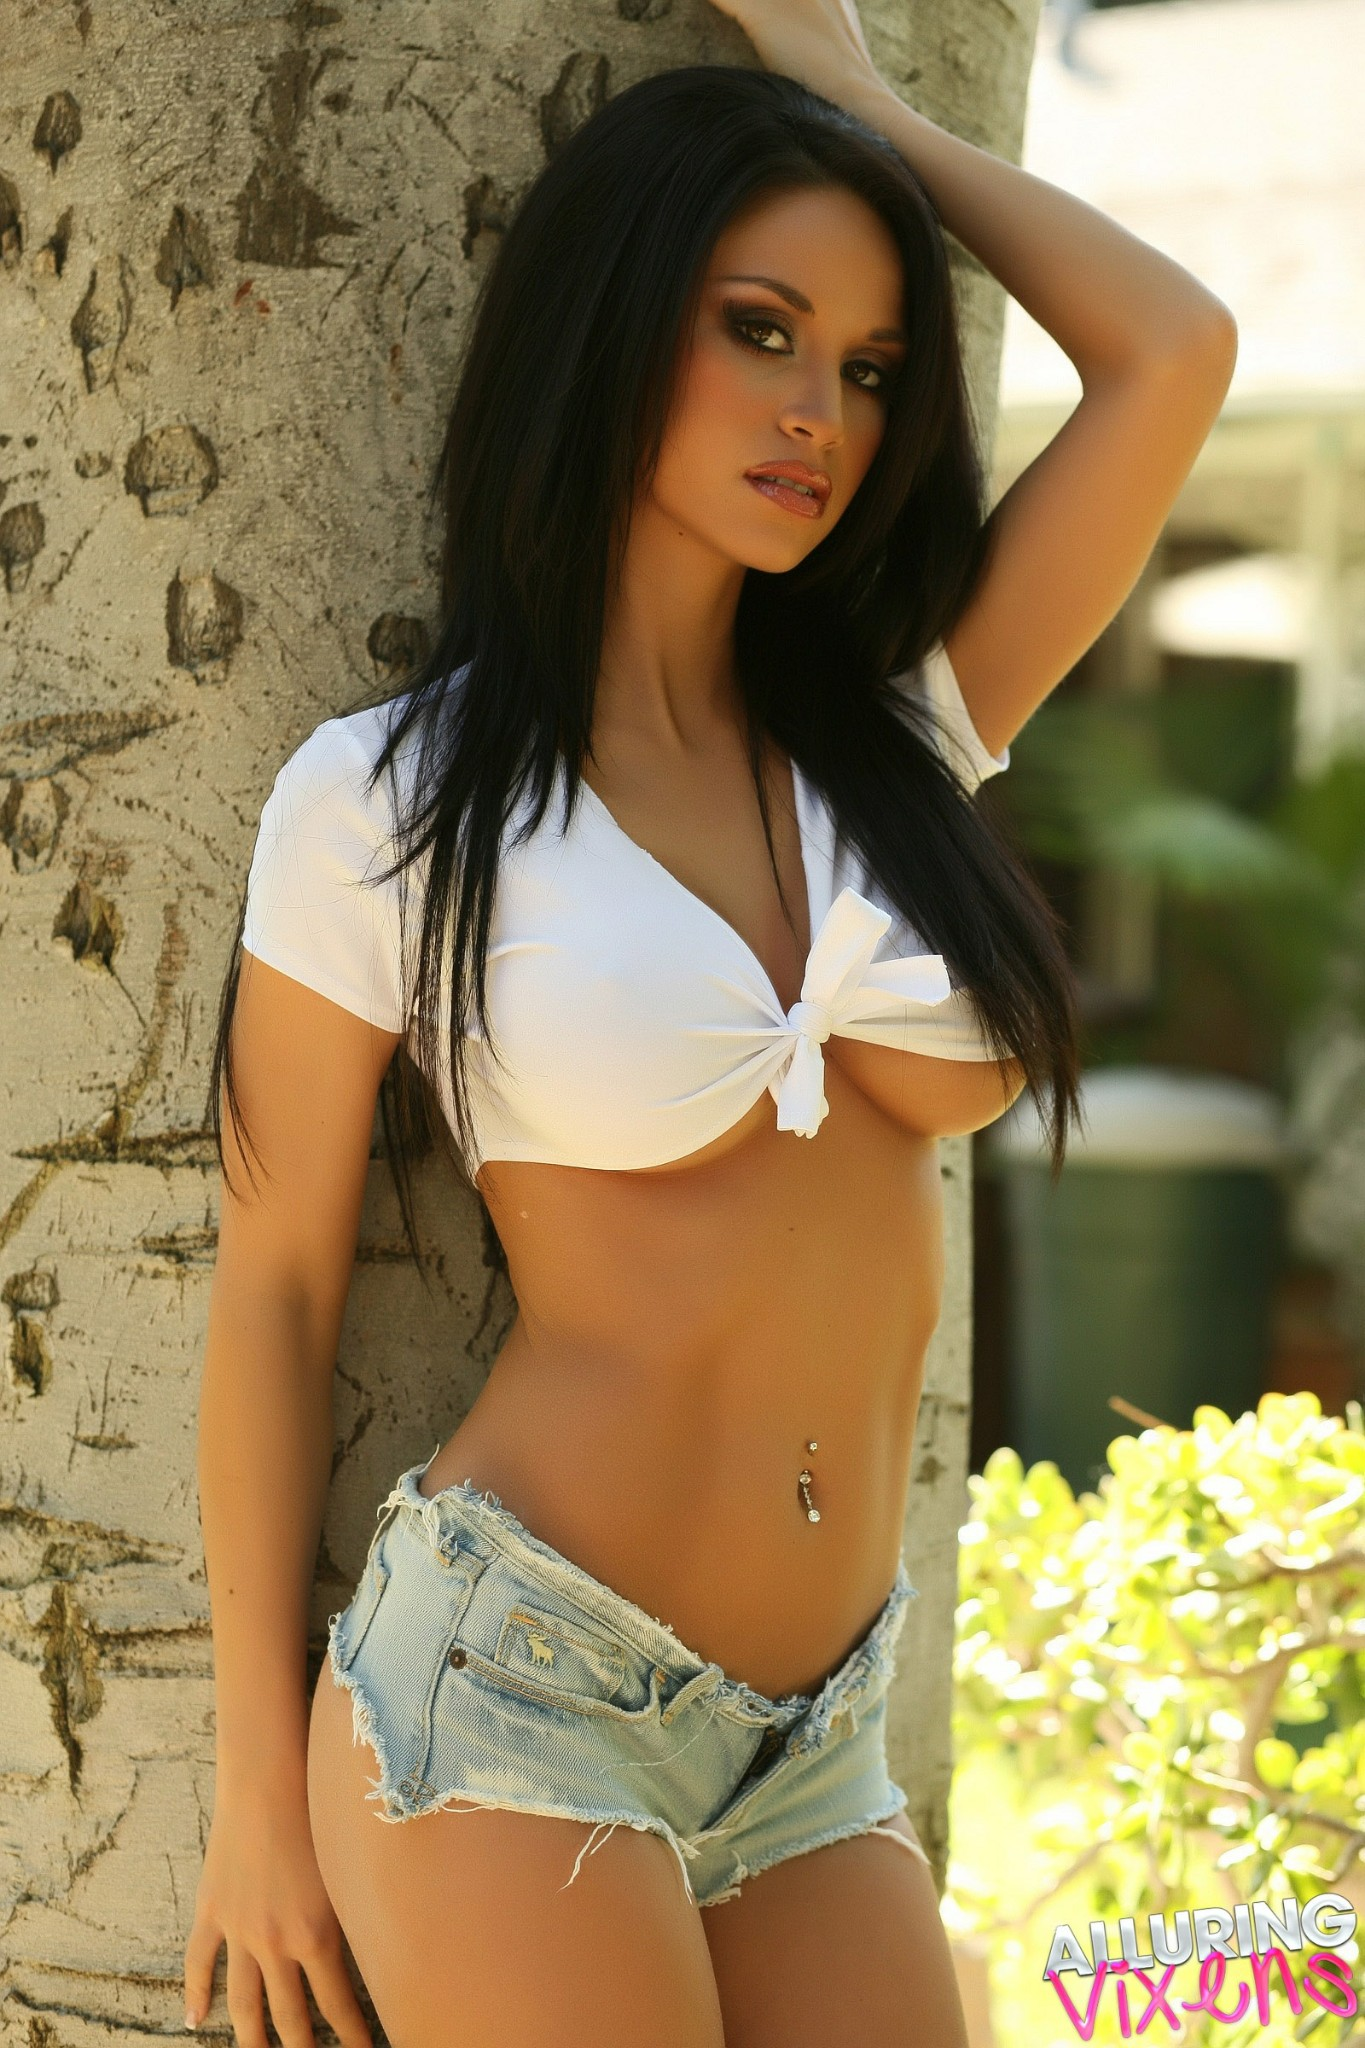 Super sexy brunette in a tied white top and jean shorts